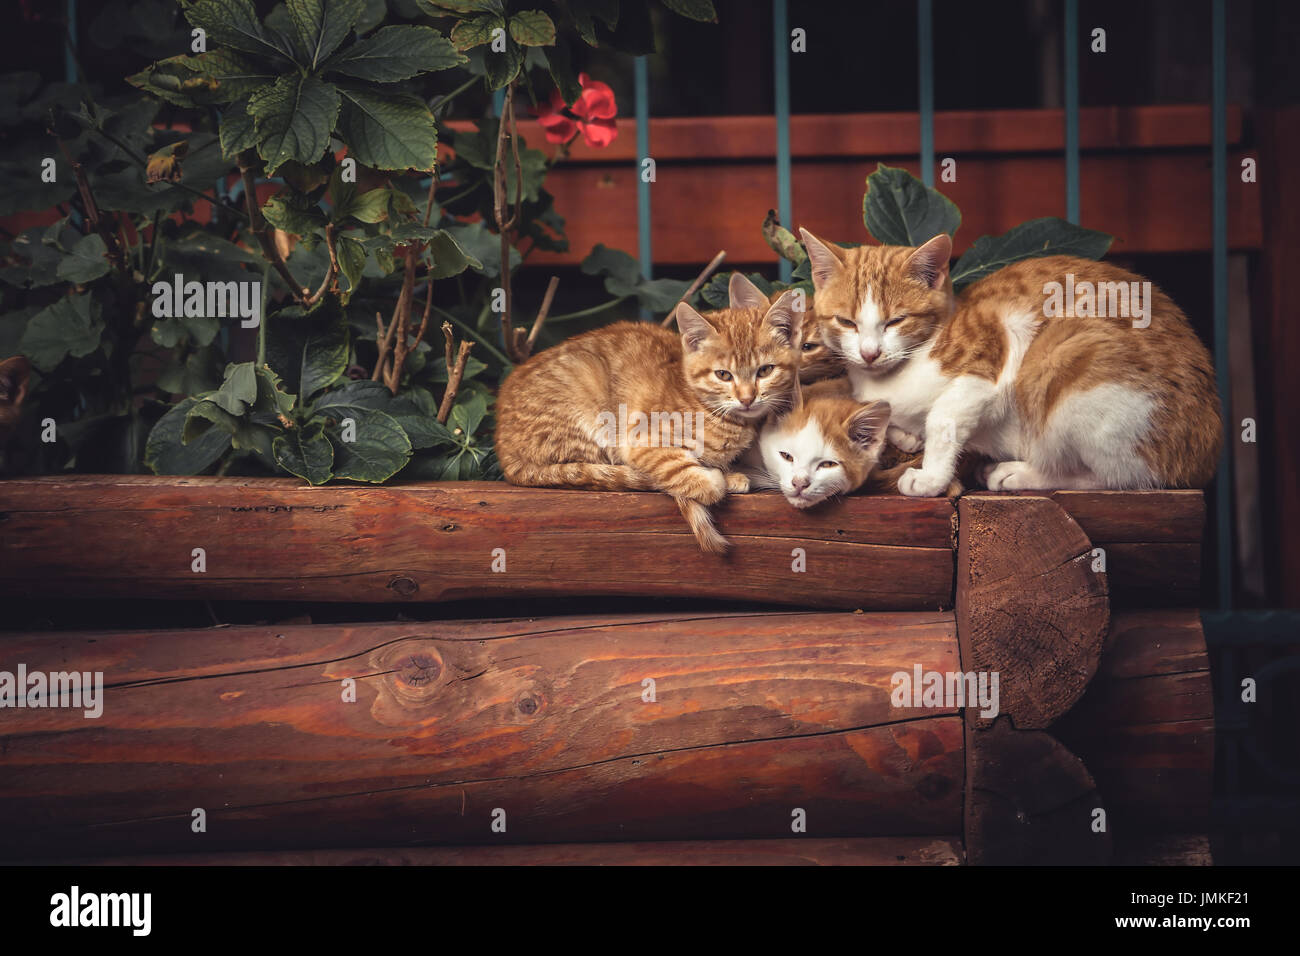 Cute red cats family together with kitten resting on wooden logs in rural countryside village in vintage rustic style - Stock Image